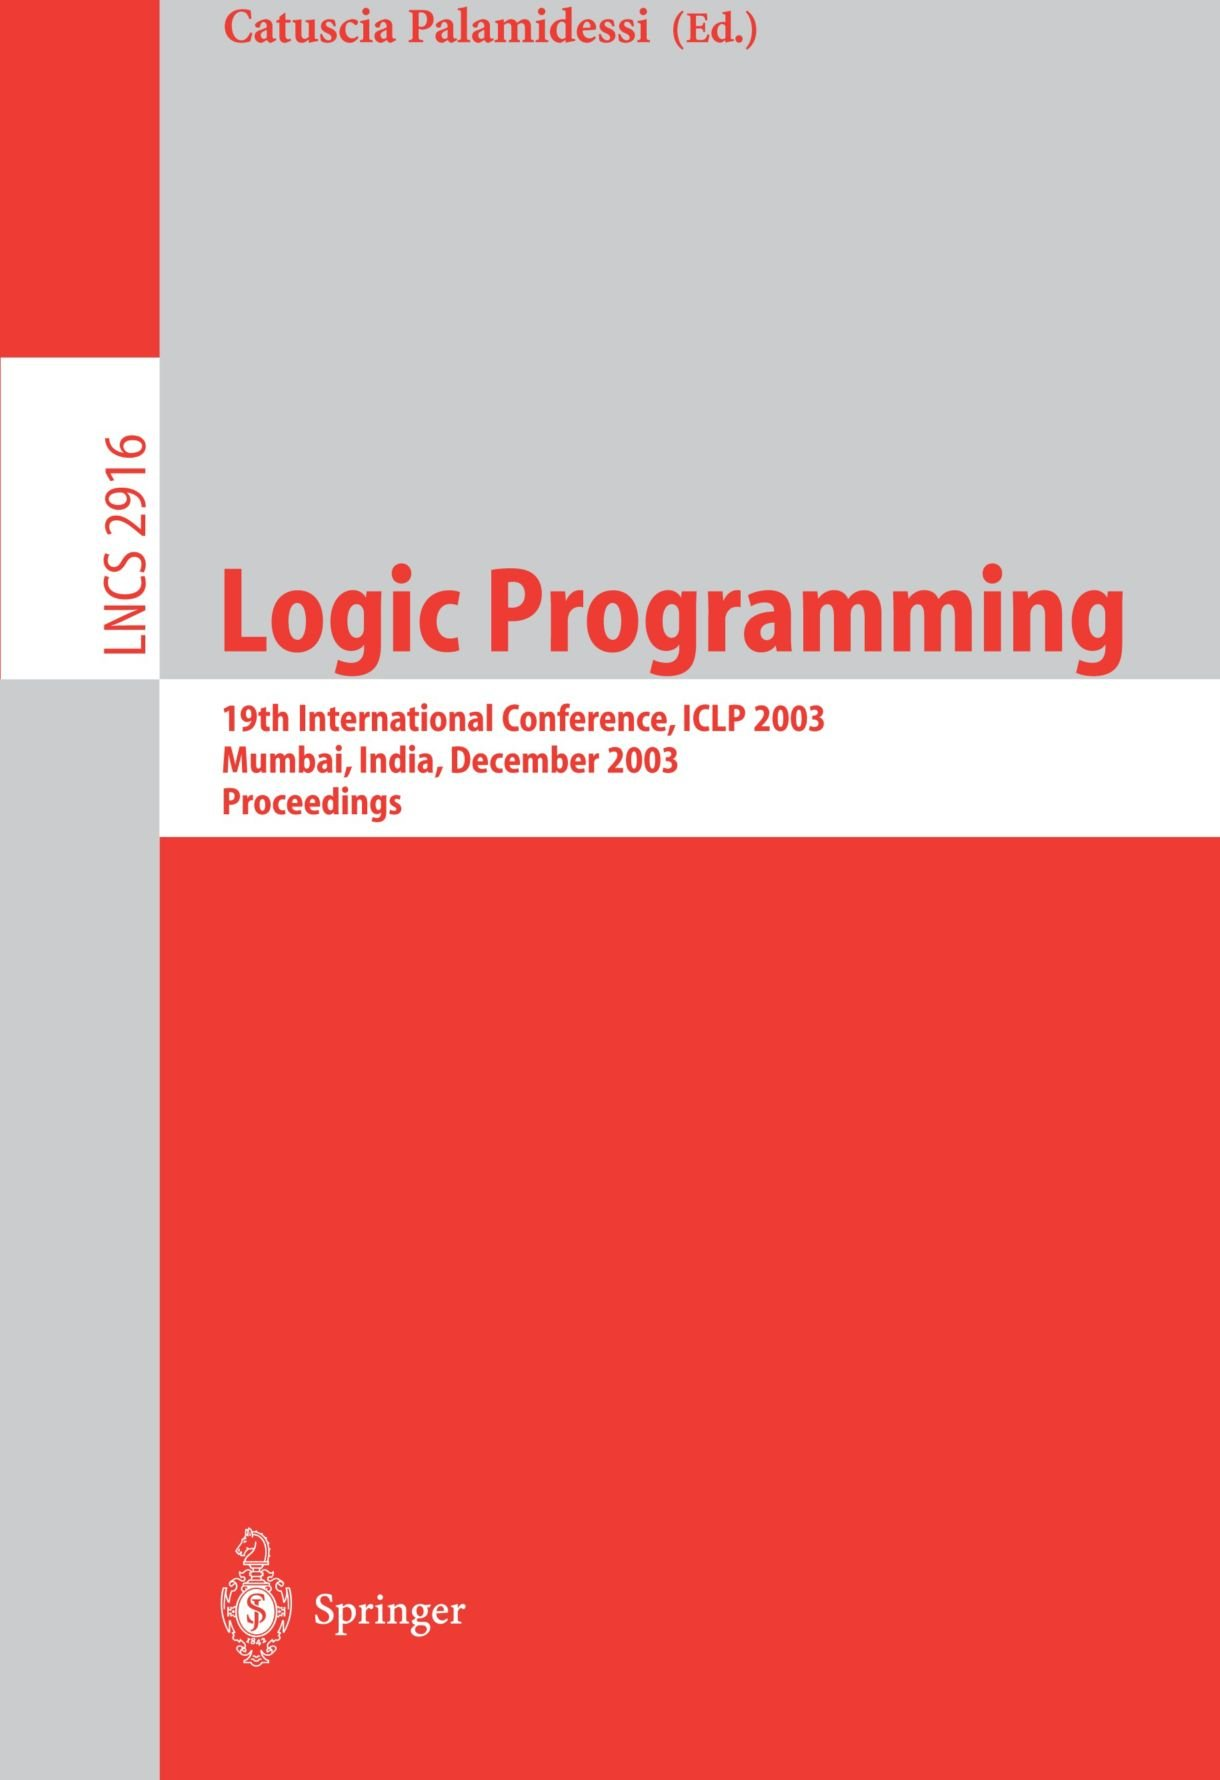 Download Logic Programming: 19th International Conference, ICLP 2003, Mumbai, India, December 9-13, 2003, Proceedings (Lecture Notes in Computer Science) pdf